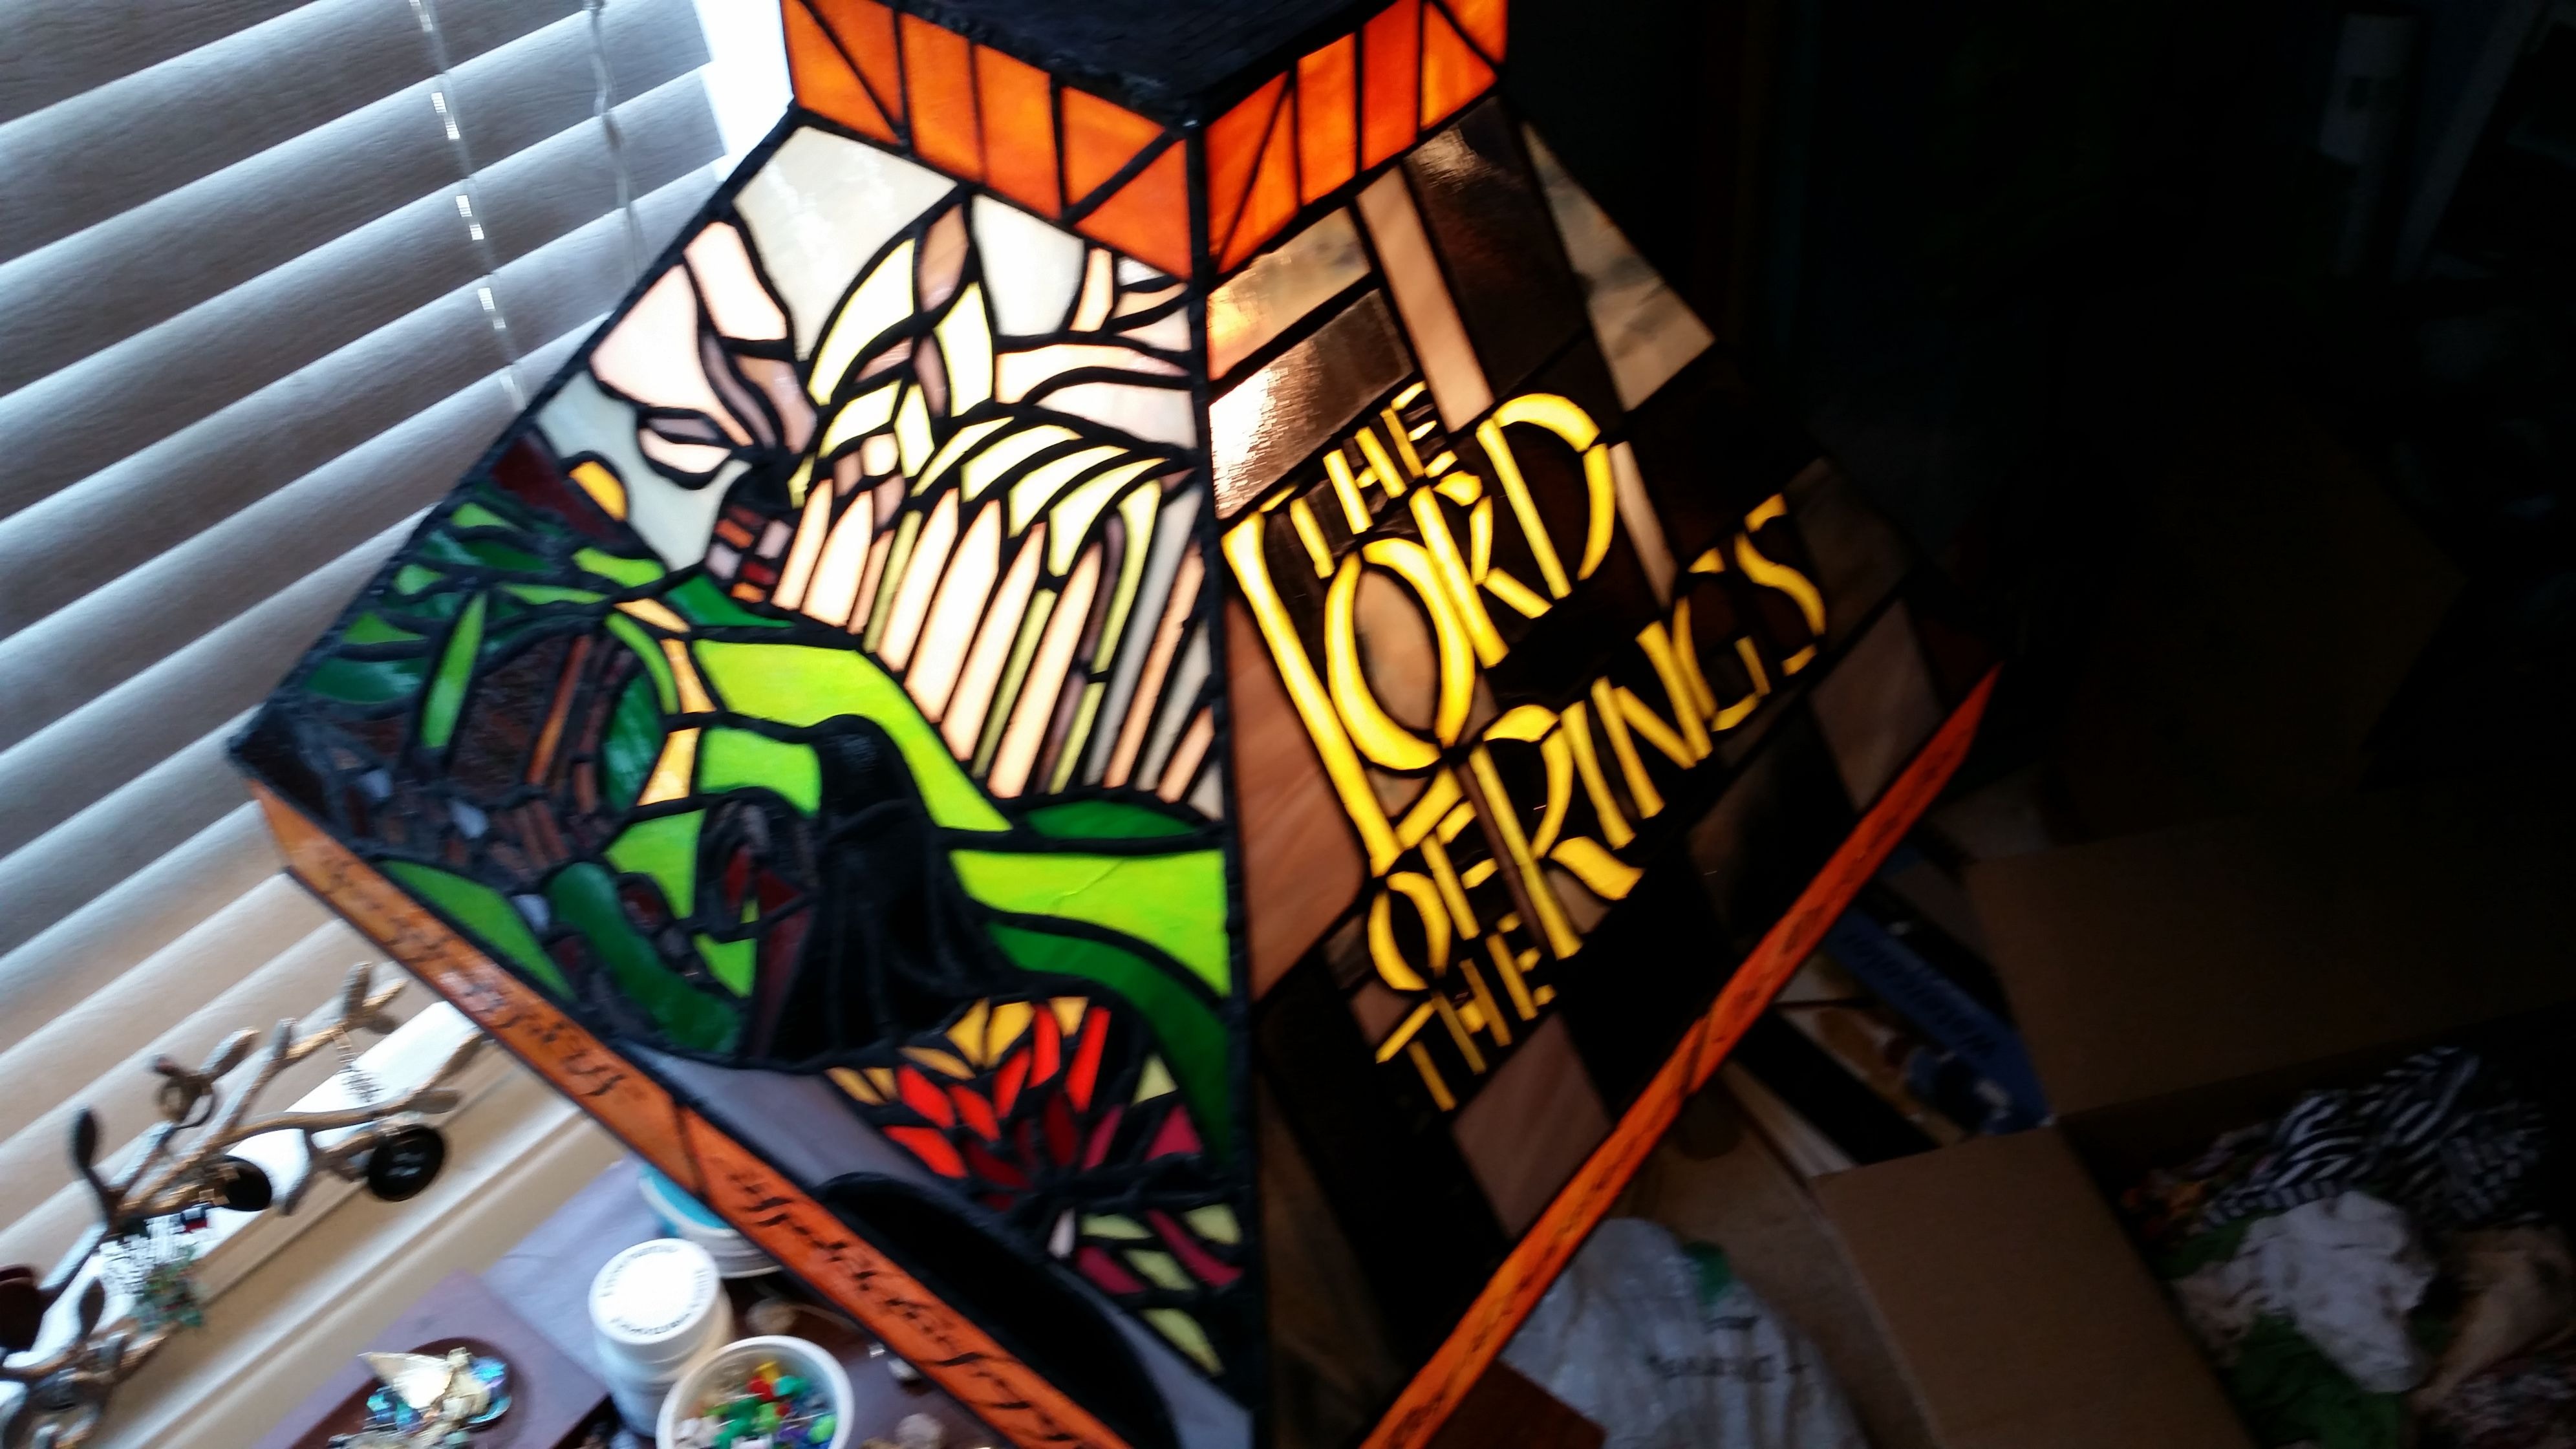 Artist creates tribute to the Lord of the Rings with stained glass lamp